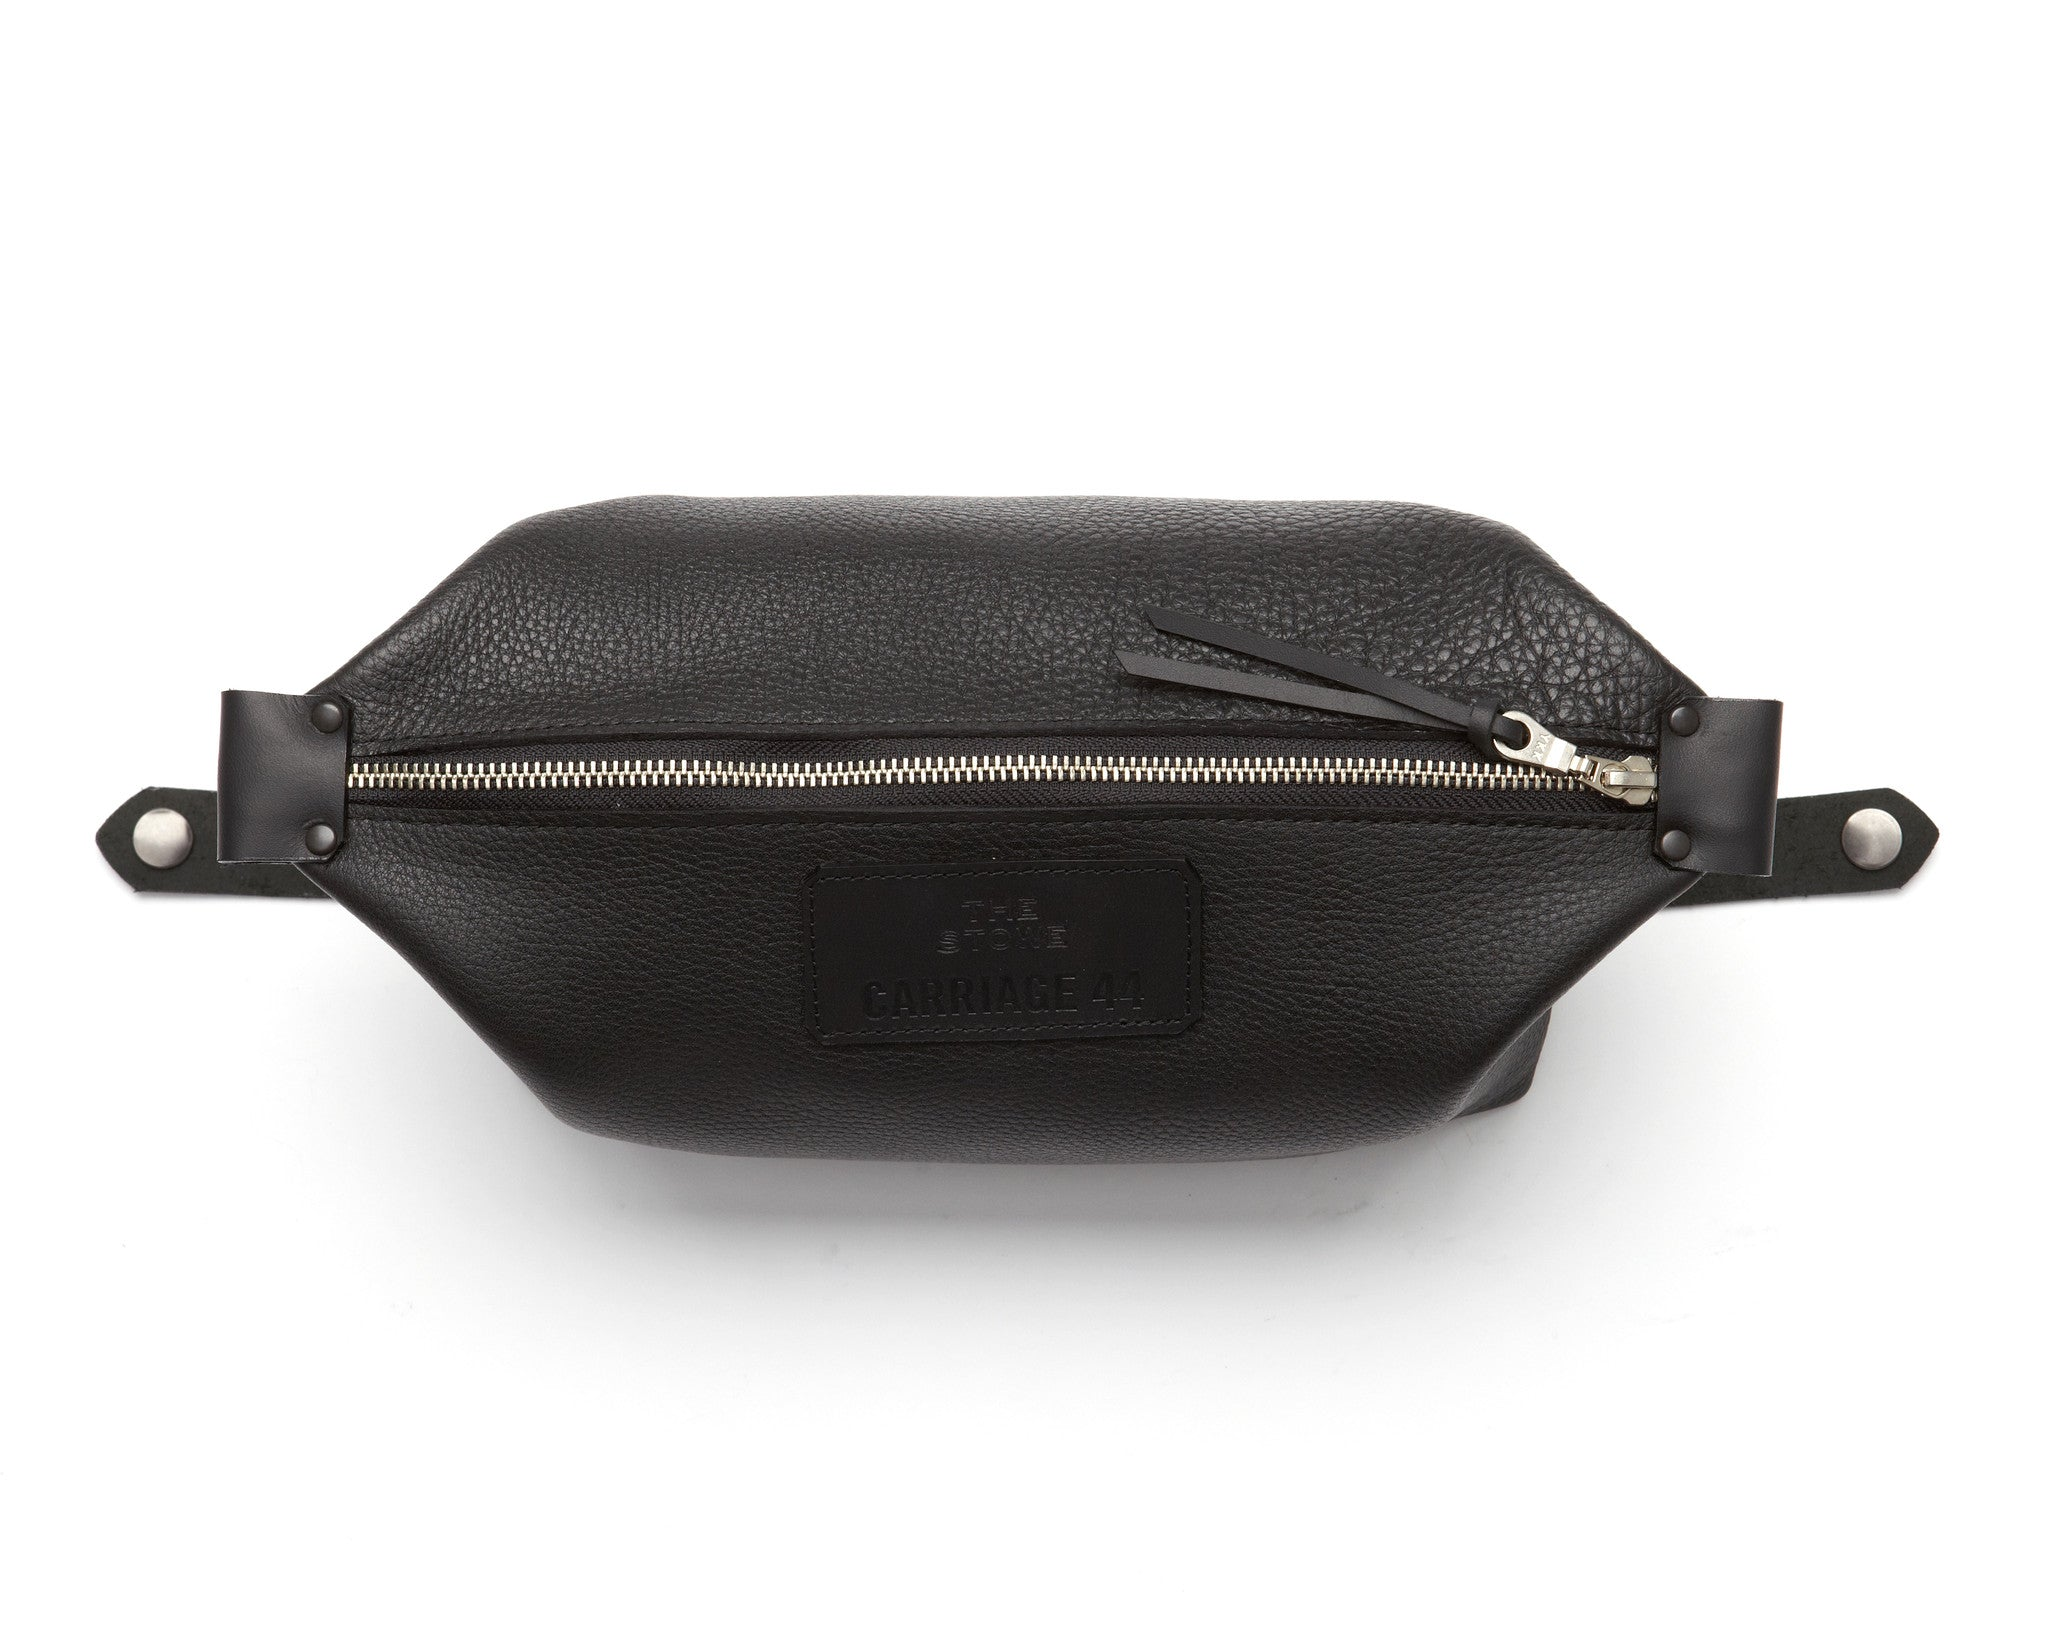 Dopp Kit - THE STOWE x Carriage 44